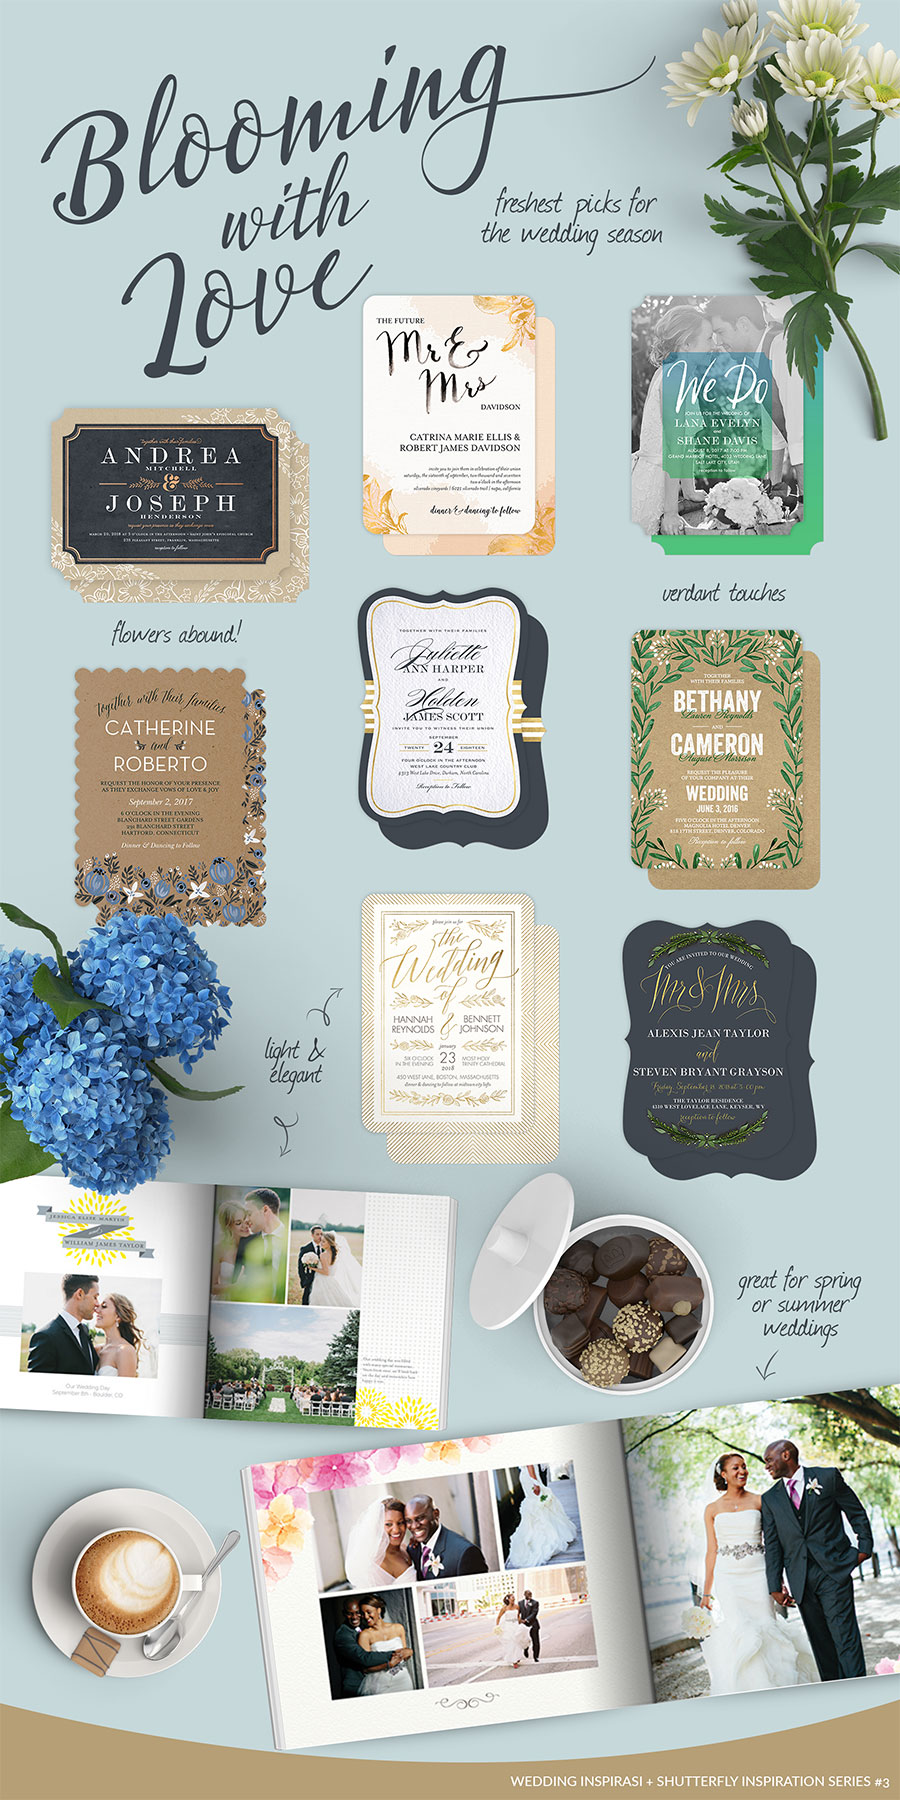 Shutterfly: Love Blooms Inspiration Board | Wedding Inspirasi